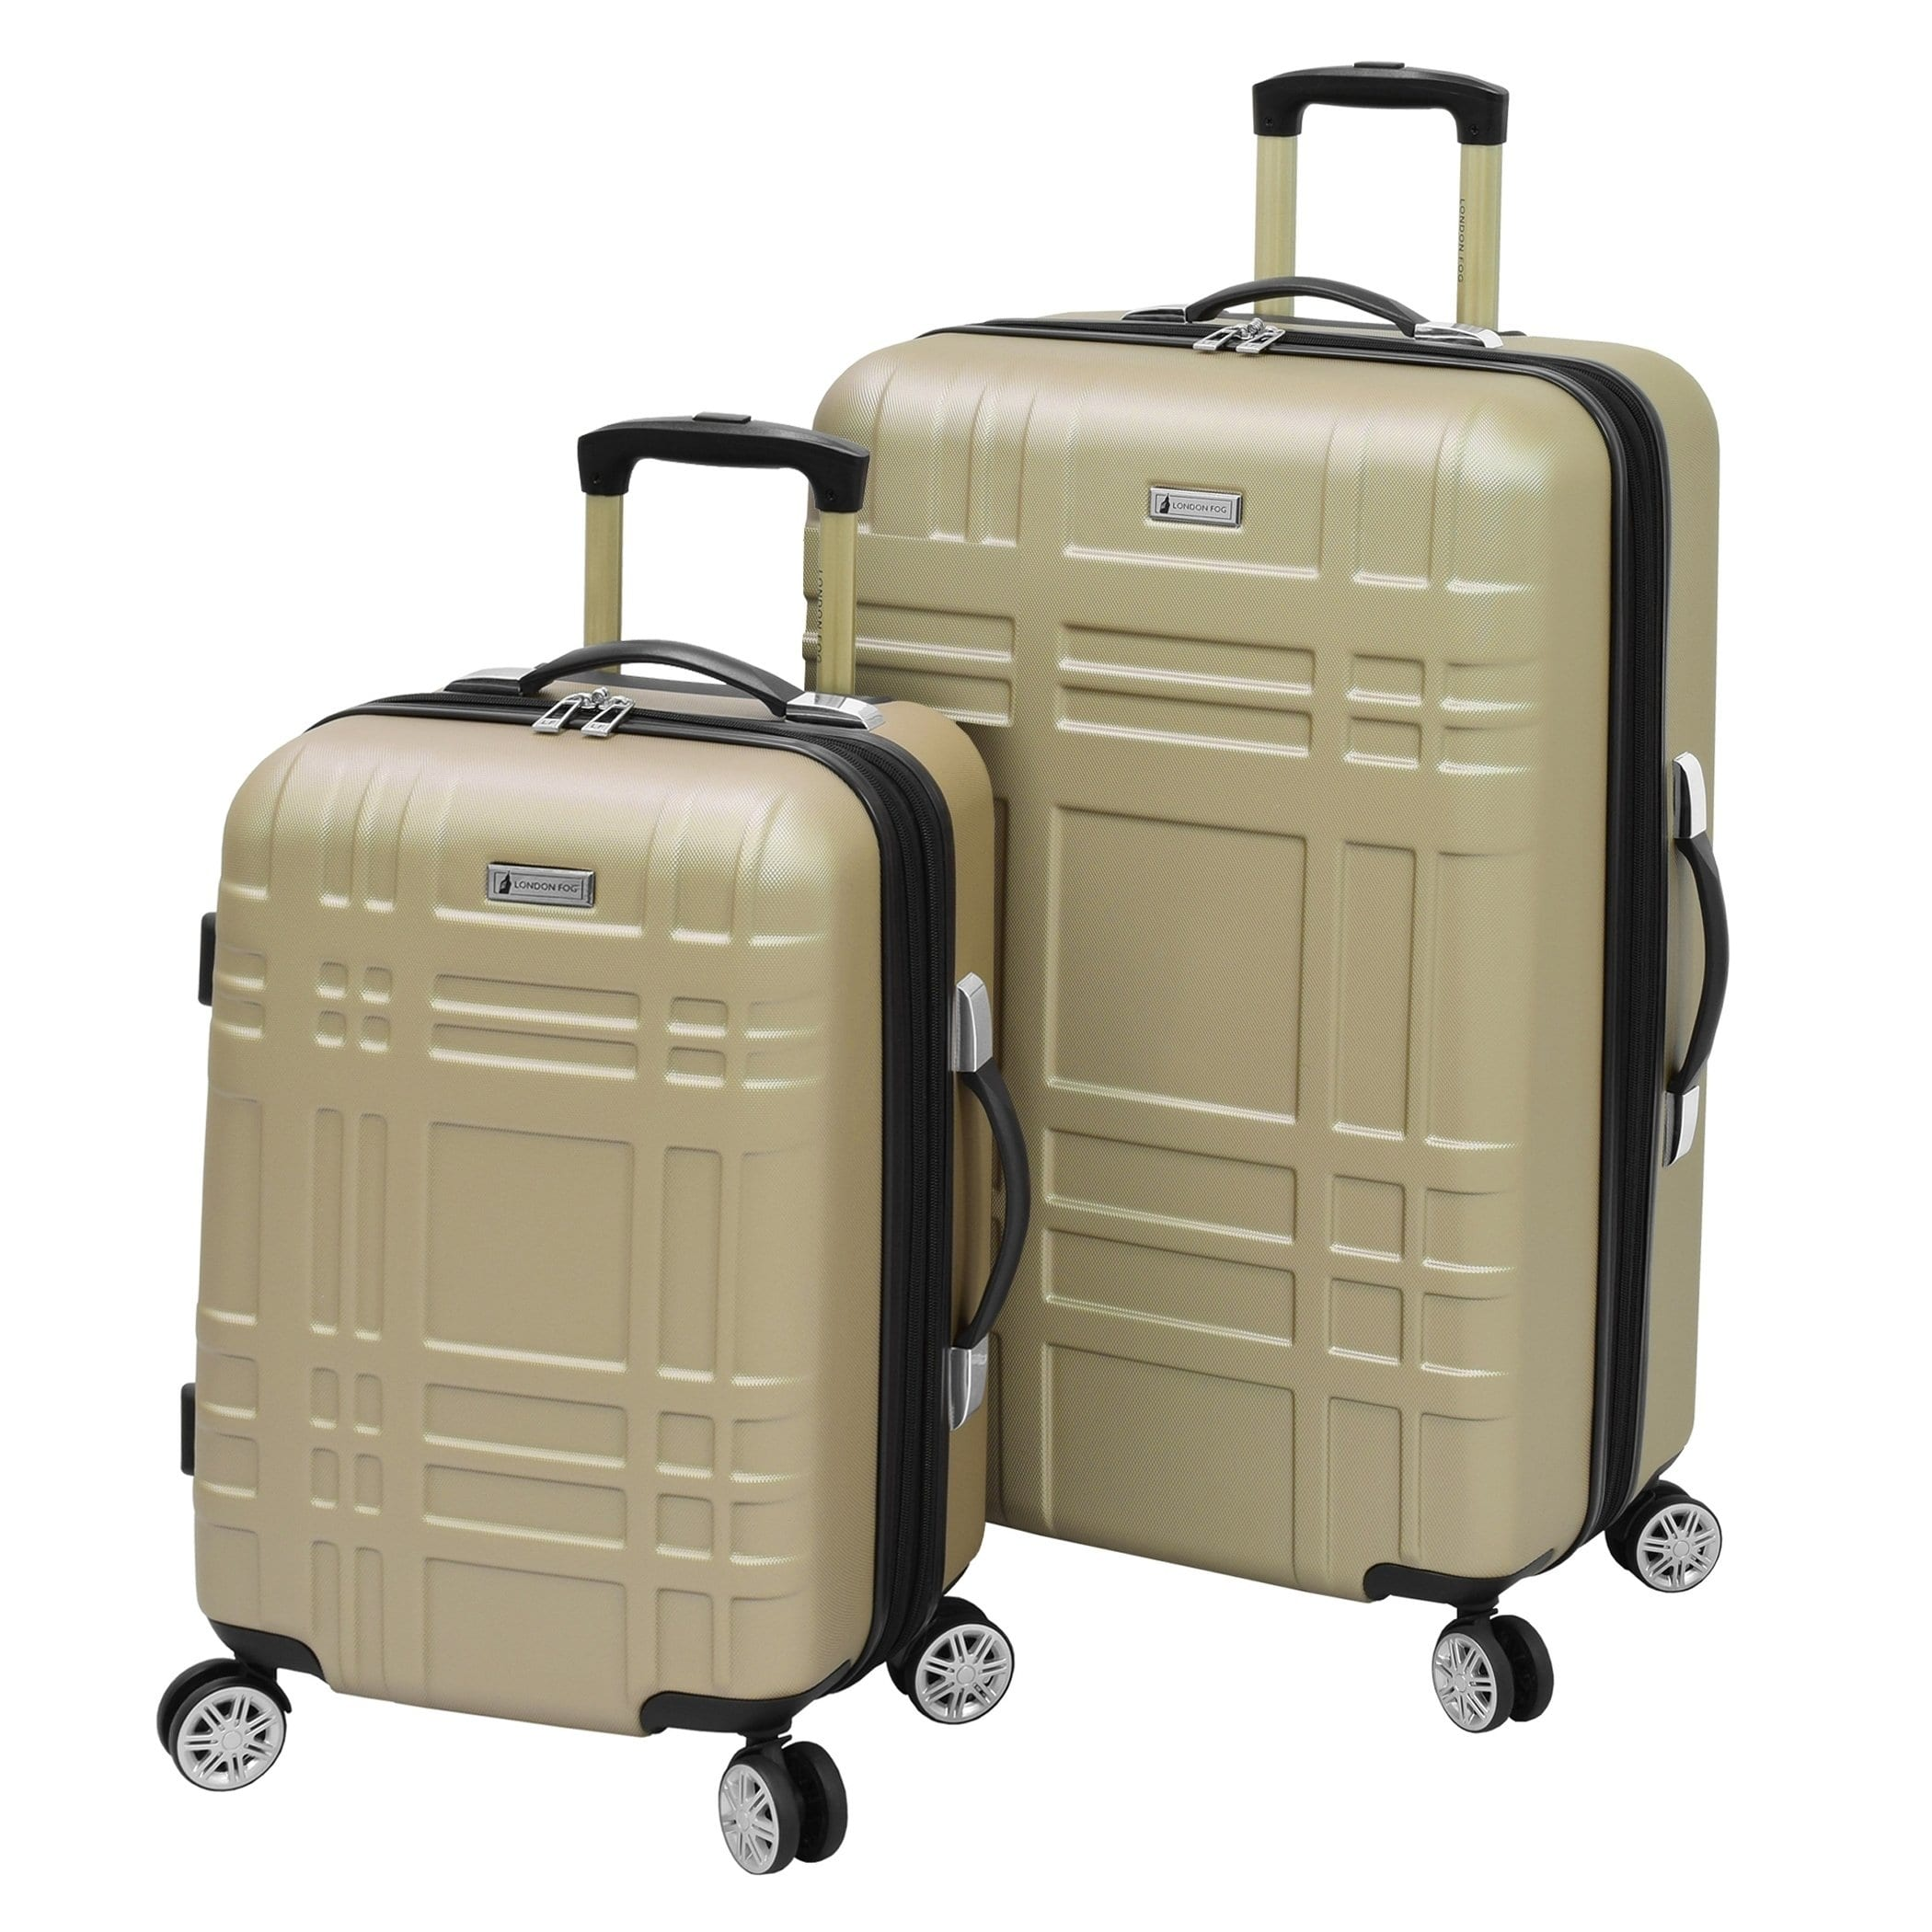 London-Fog-Hardside-Spinner-2-Piece-Luggage-Set-f9313051-6d5c-41af-ab1d-57771fc9d78c.jpg